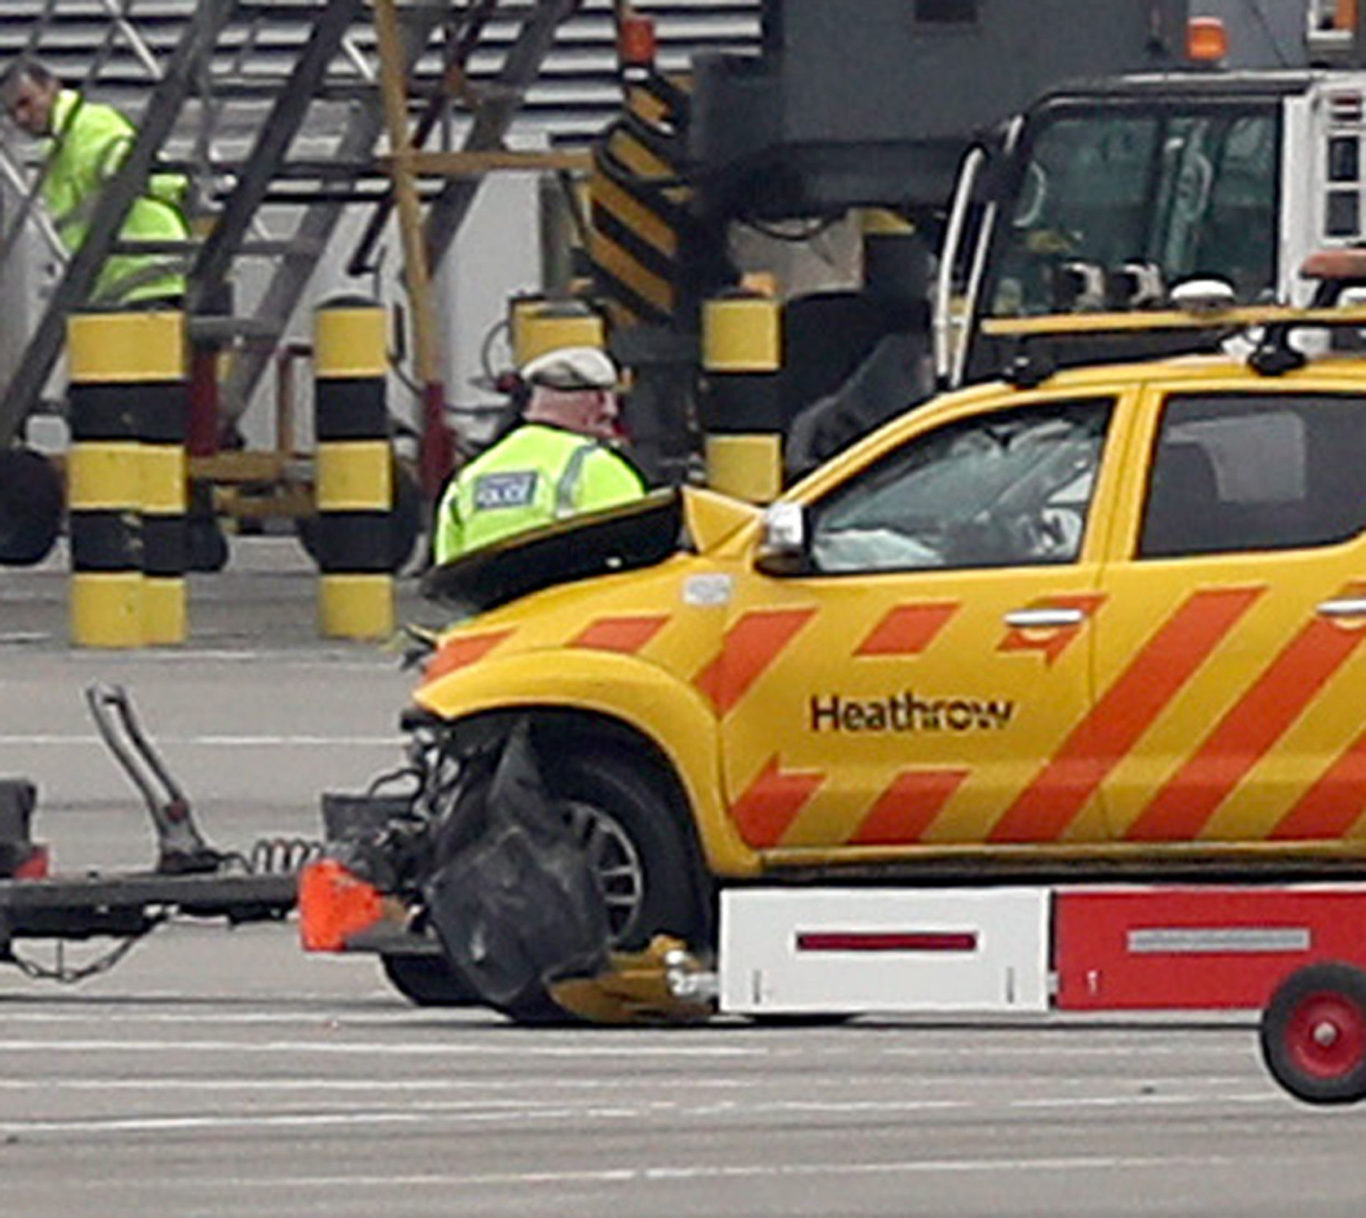 One of the vehicles involved in the crash at Heathrow Airport